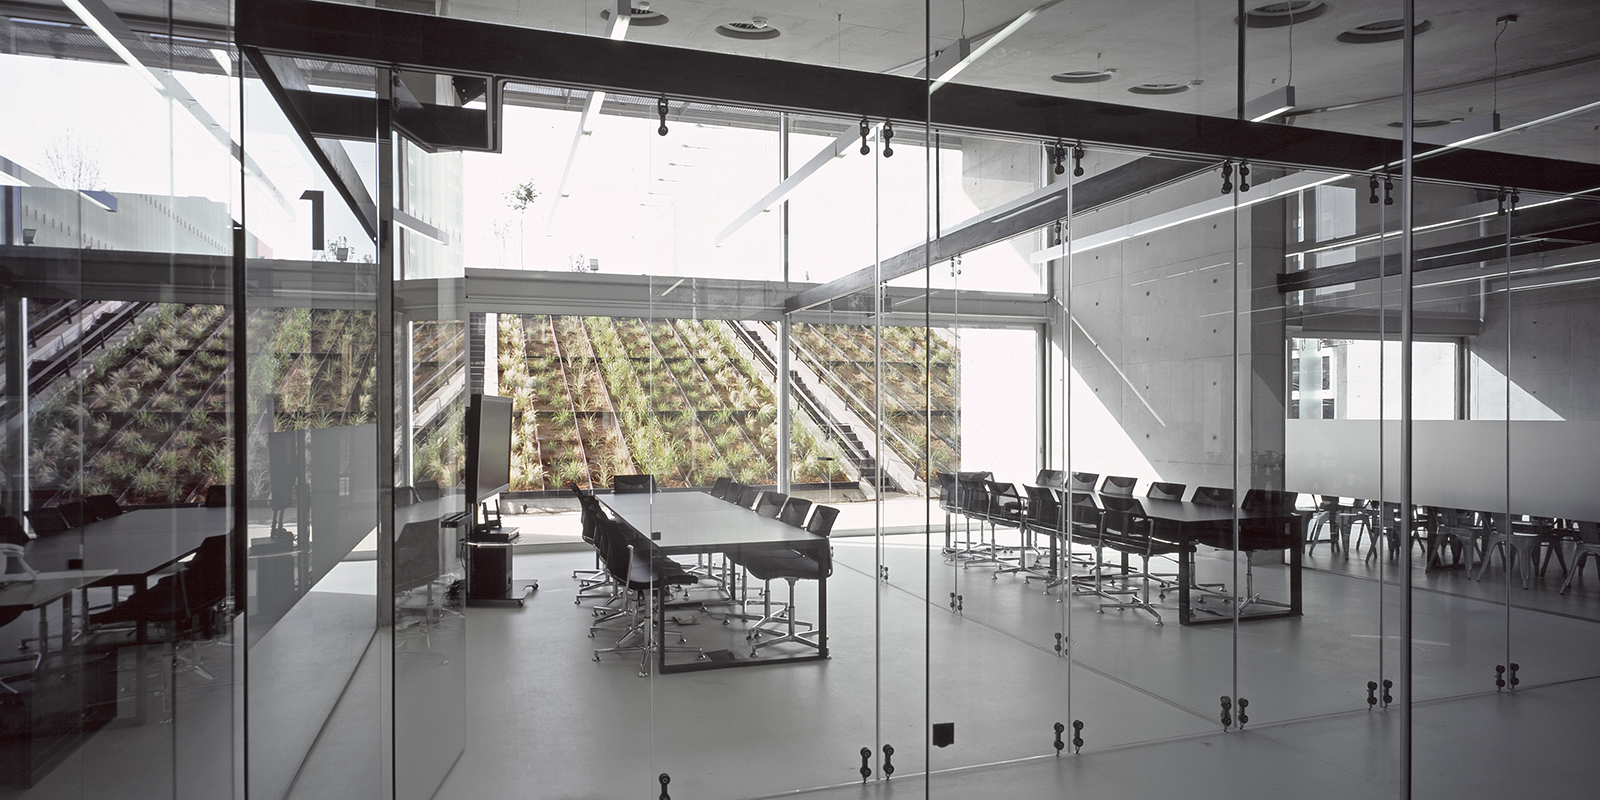 Conference rooms on the ground floor